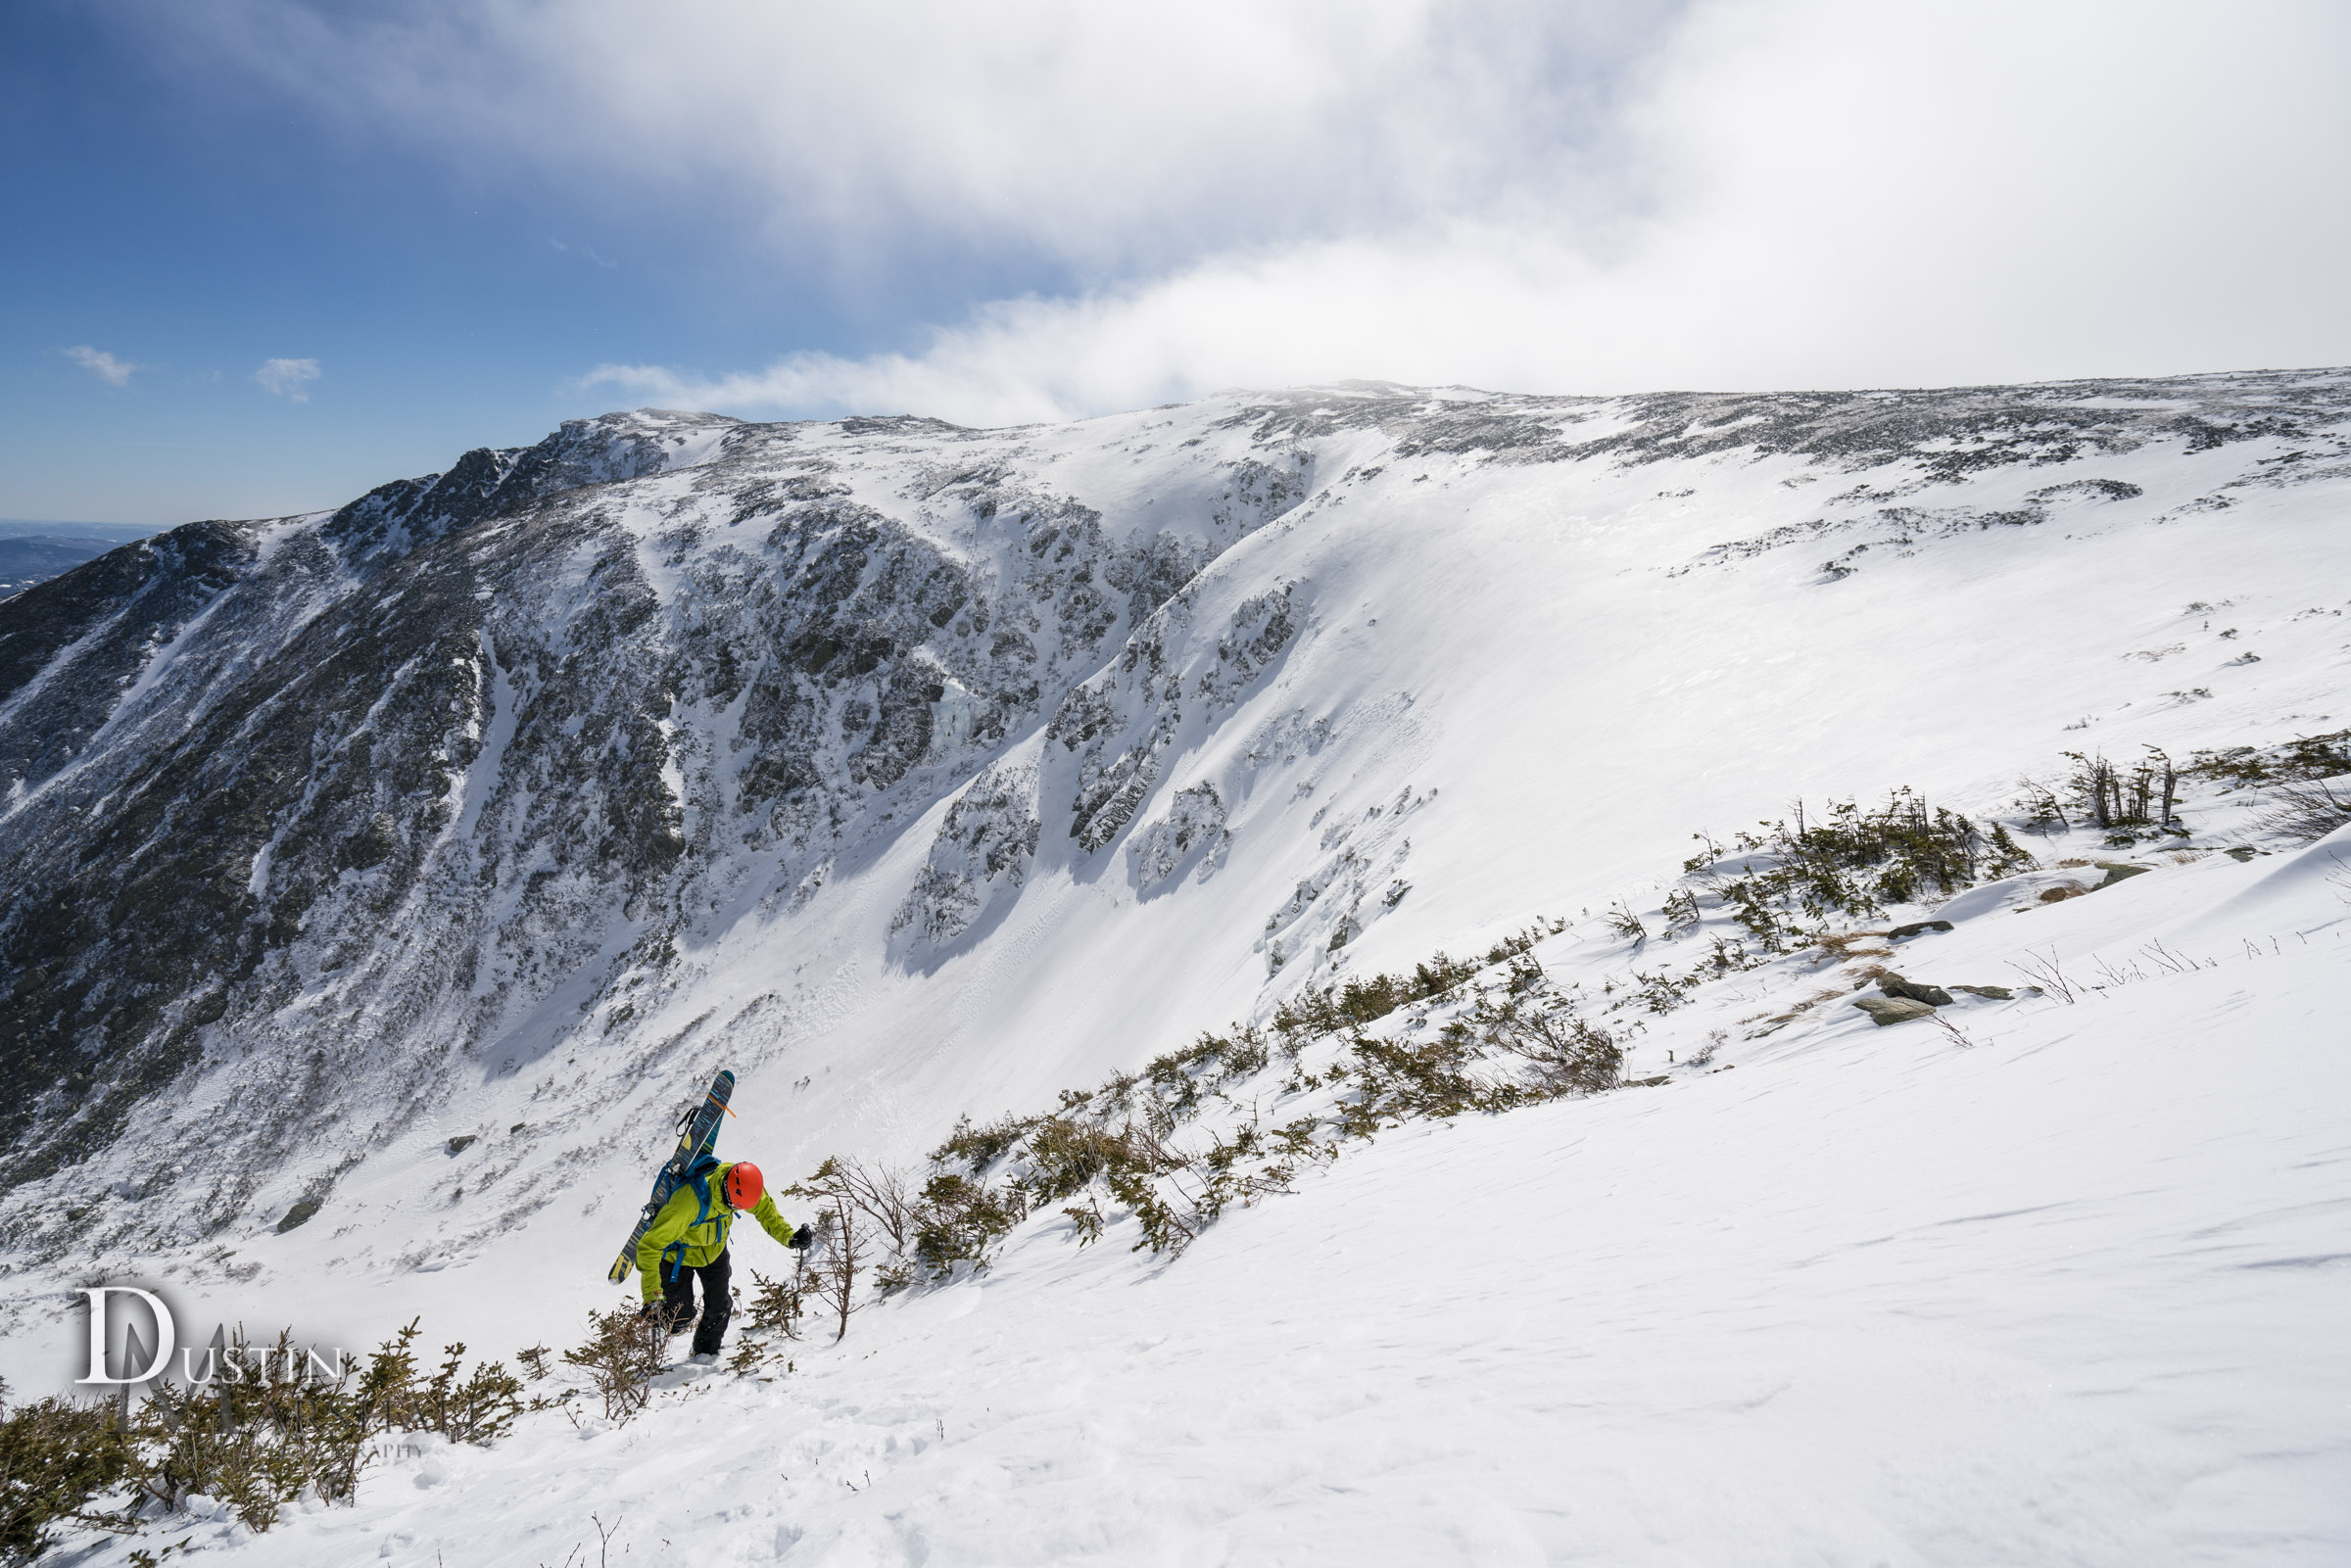 Topping out Sluice in Tuckerman Ravine